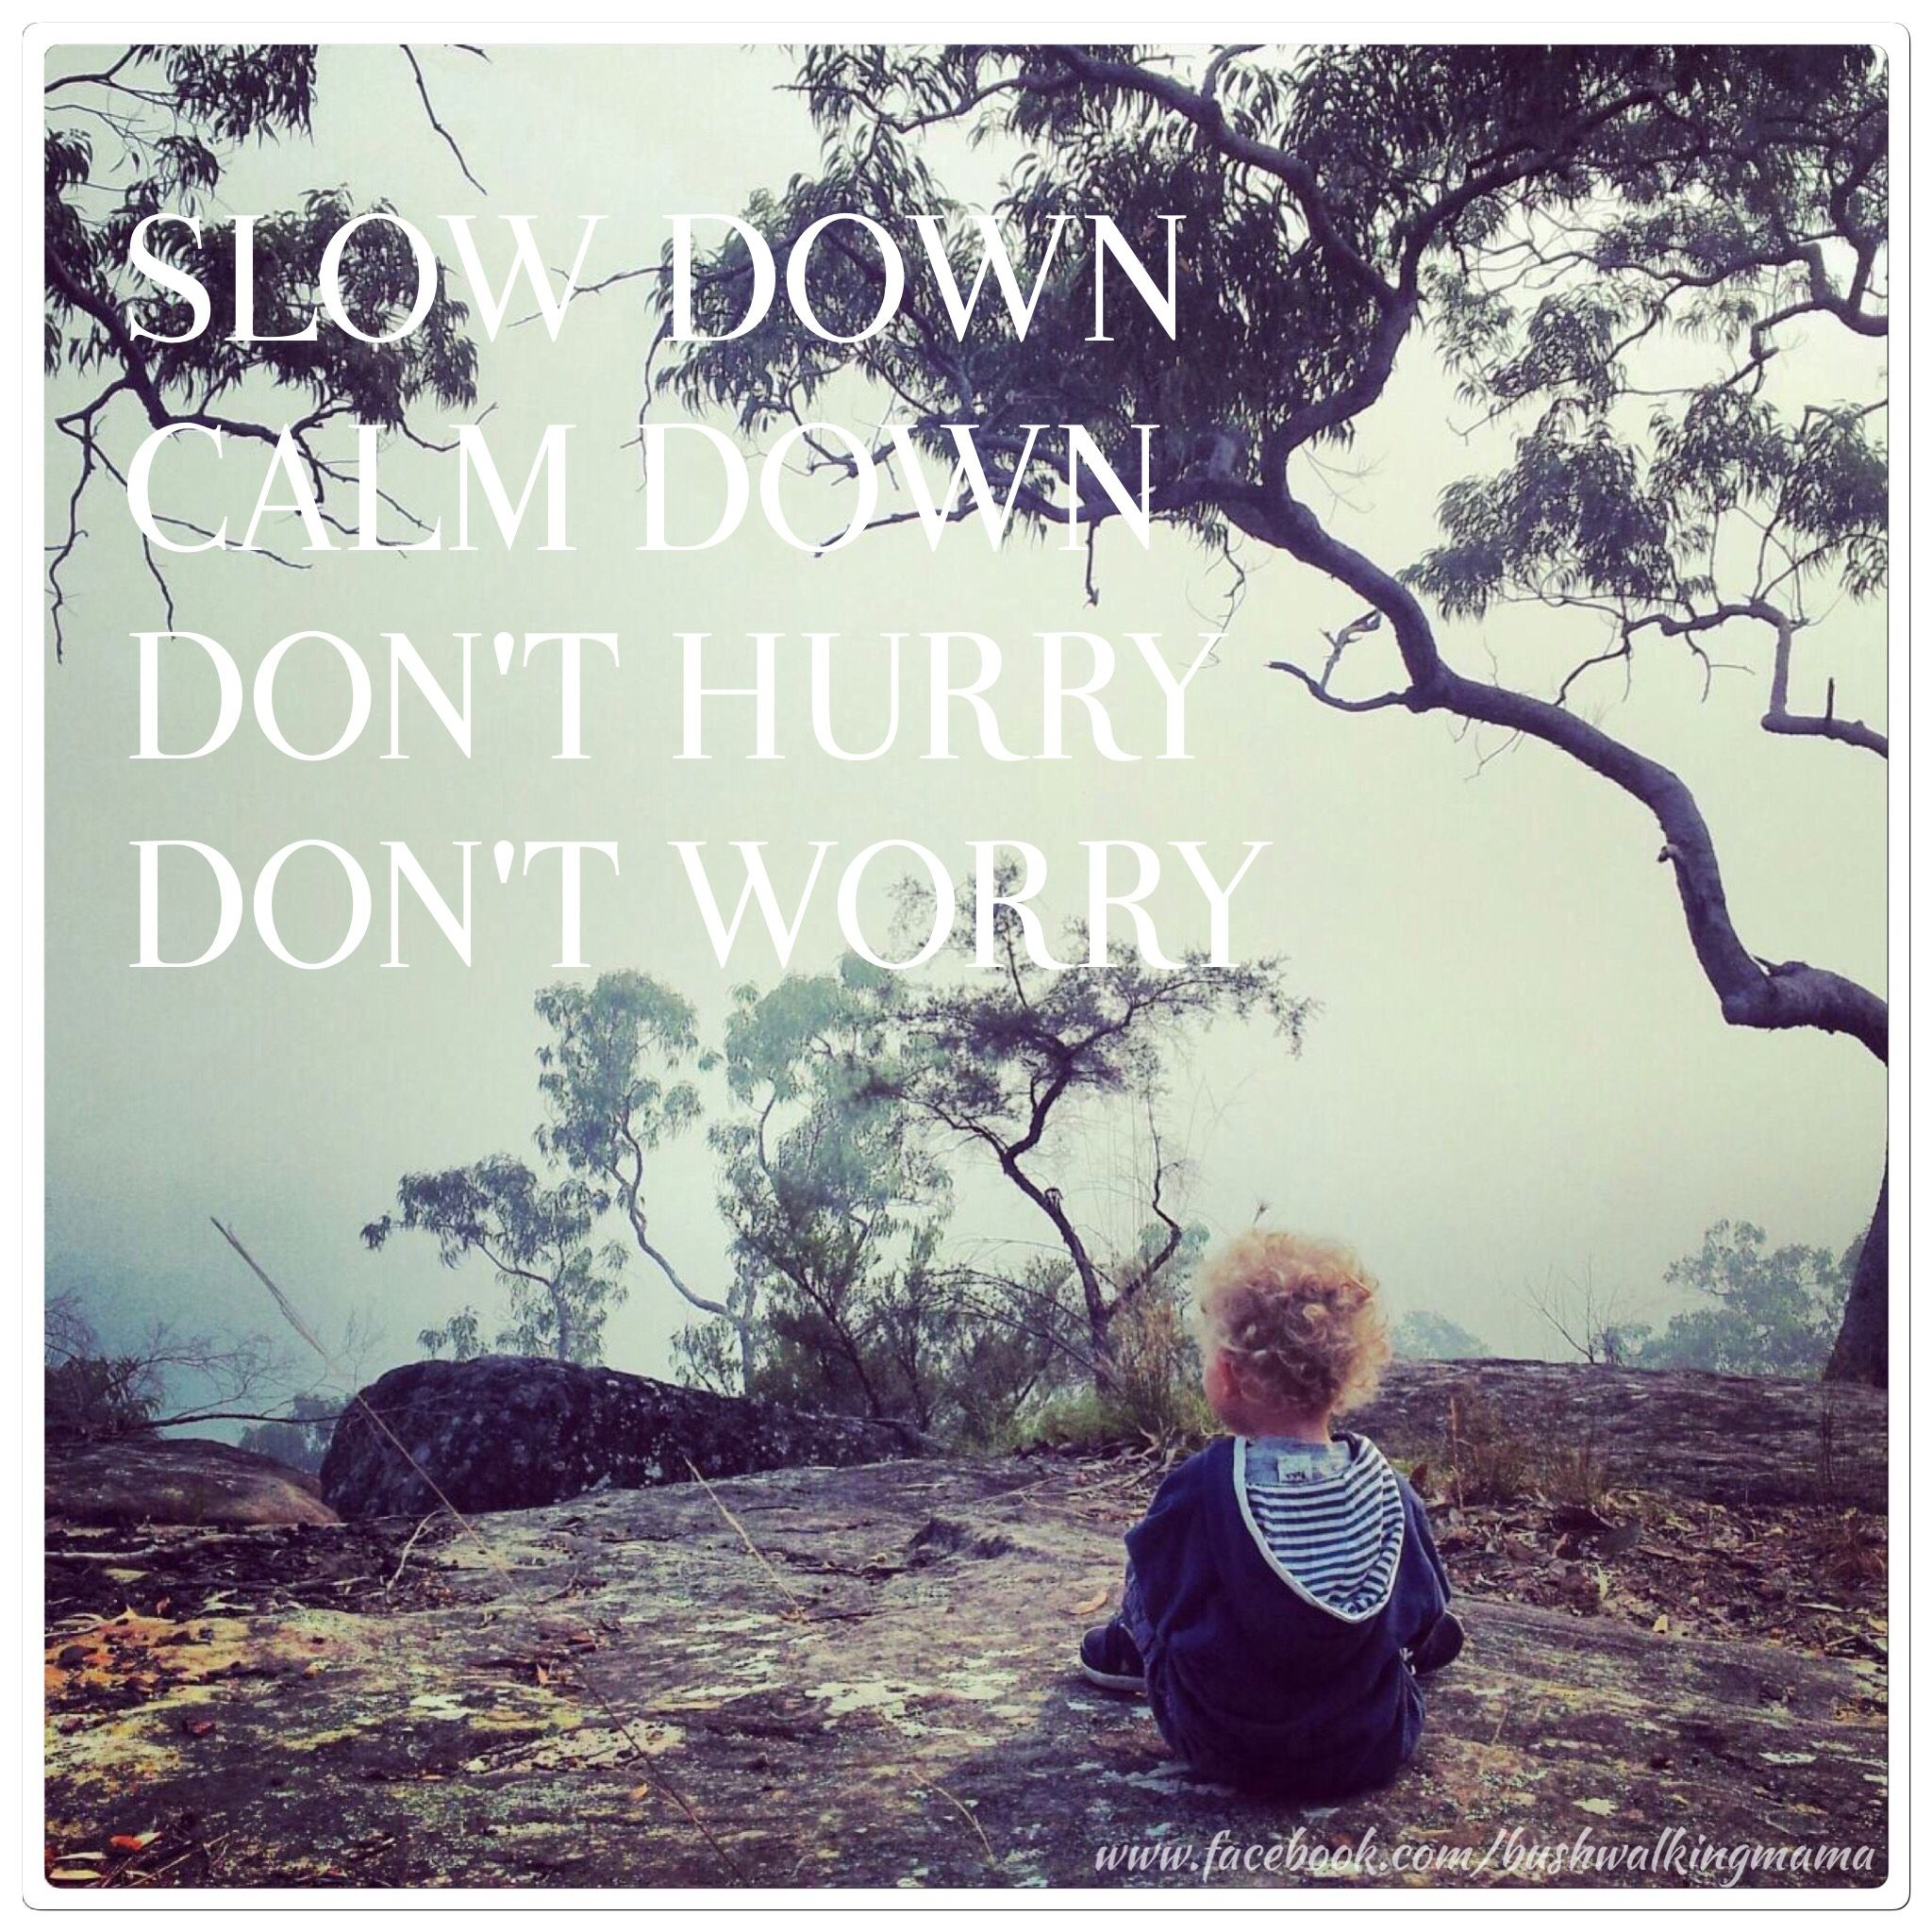 Slow down. Calm down. Don't hurry. Don't worry. www.facebook.com/bushwalkingmama